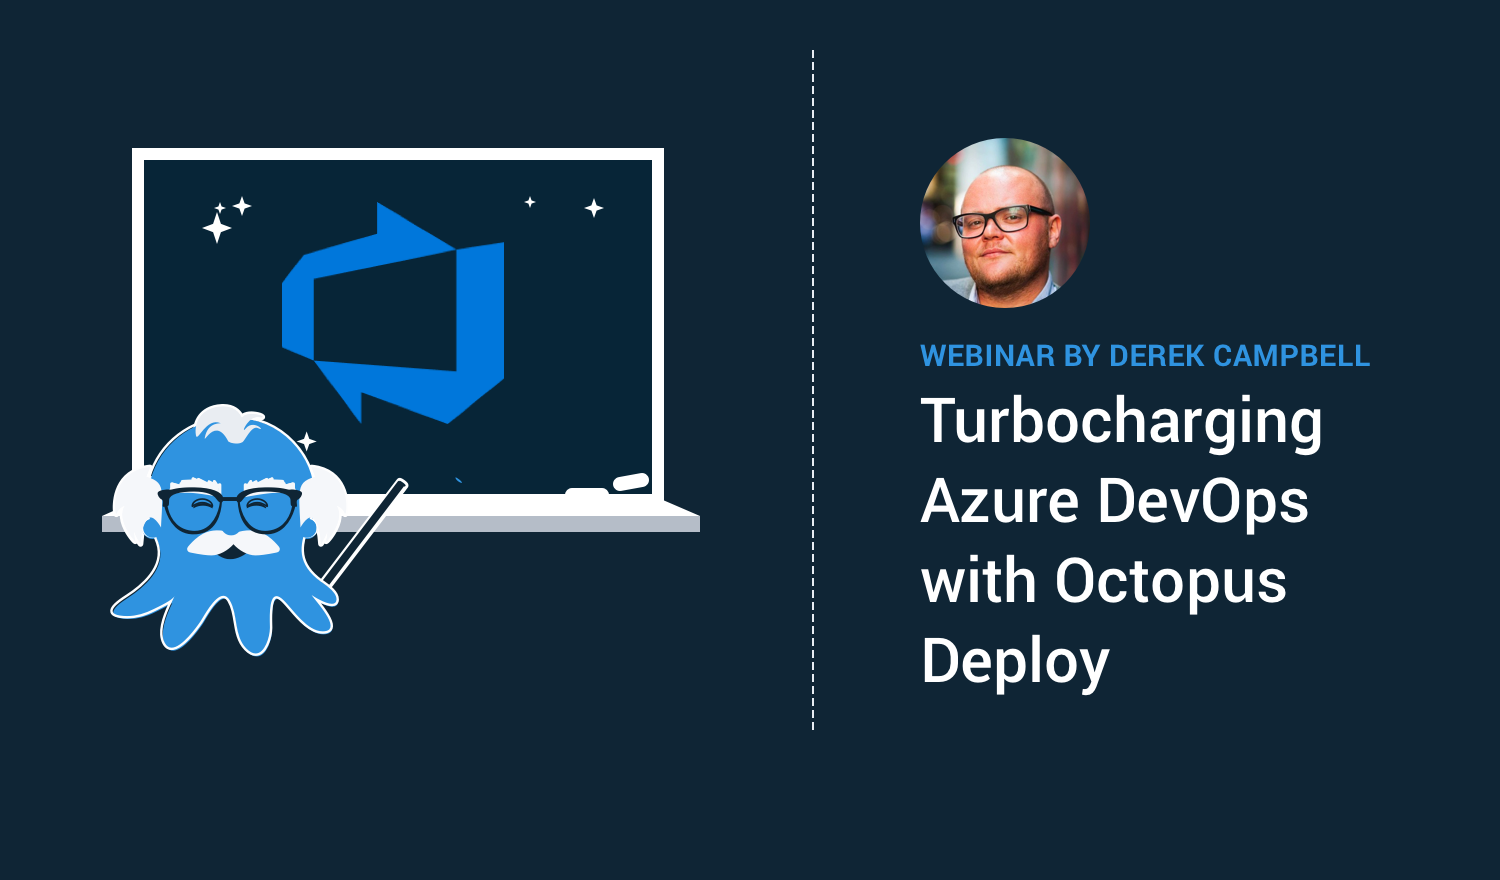 Turbocharging Azure DevOps with Octopus Deploy